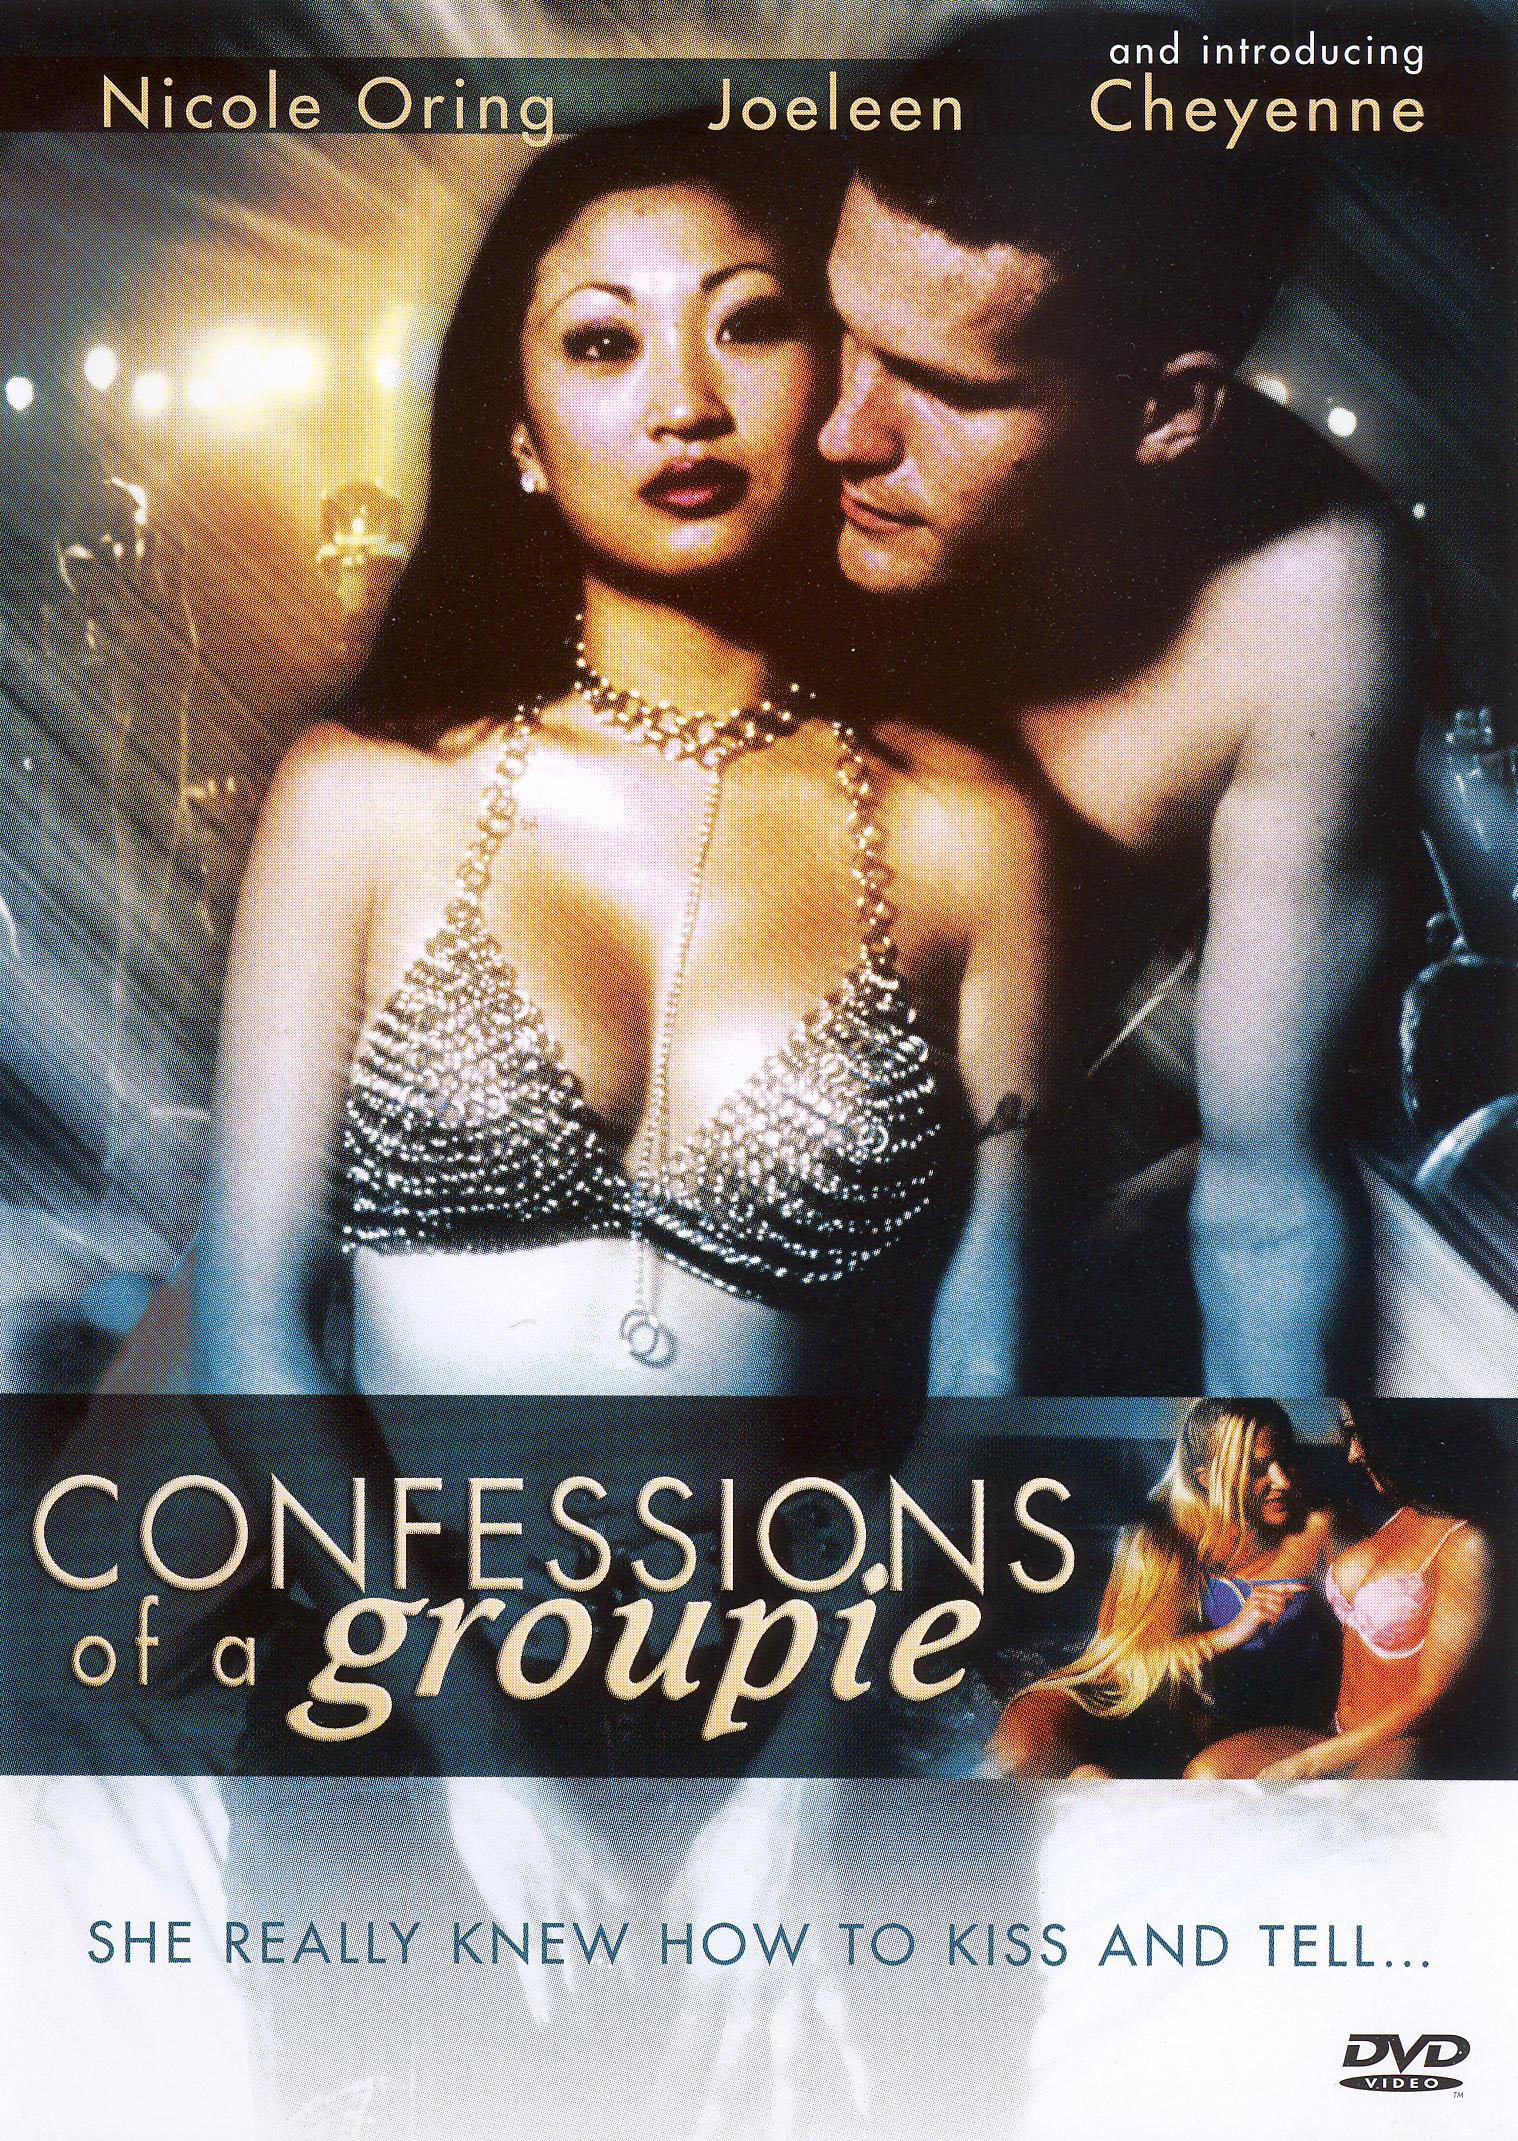 Confessions of a Groupie